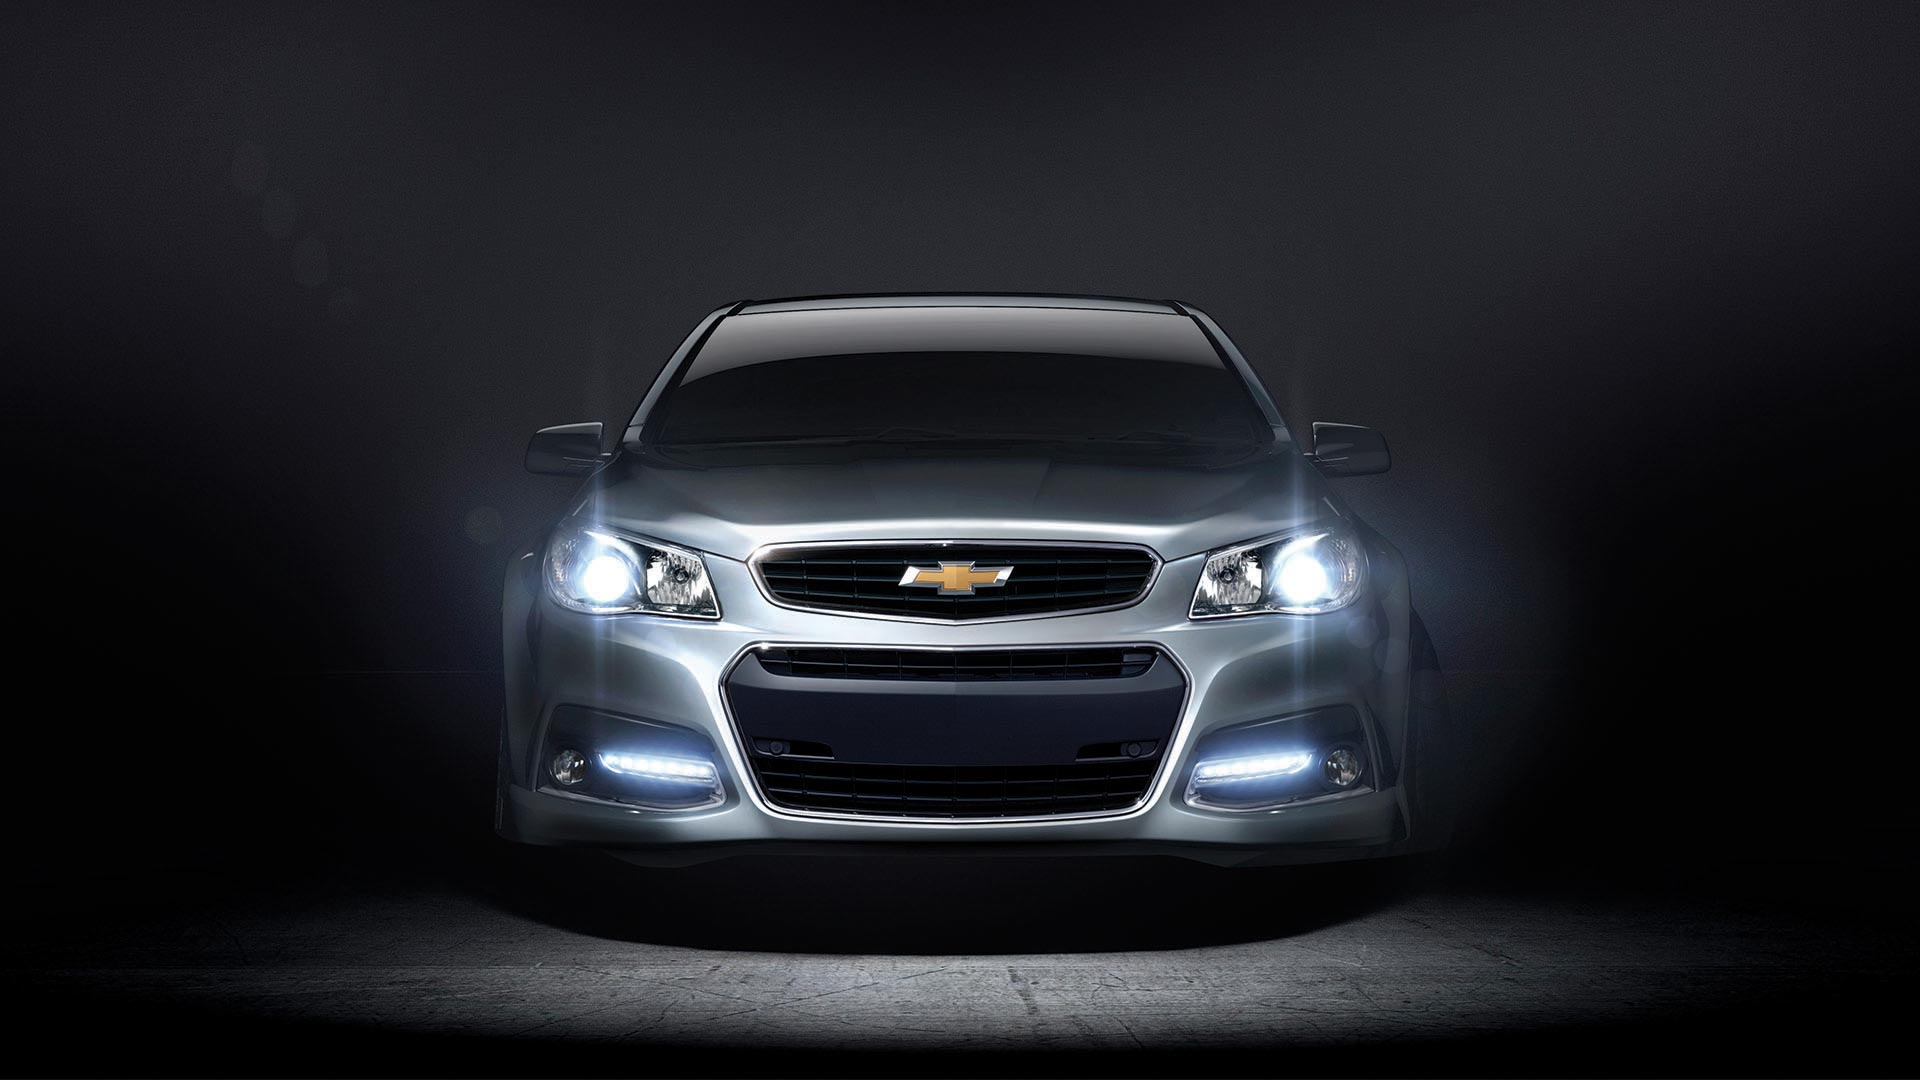 2014-chevrolet-ss-photo-videos-exterior-stage-1920x1080-02